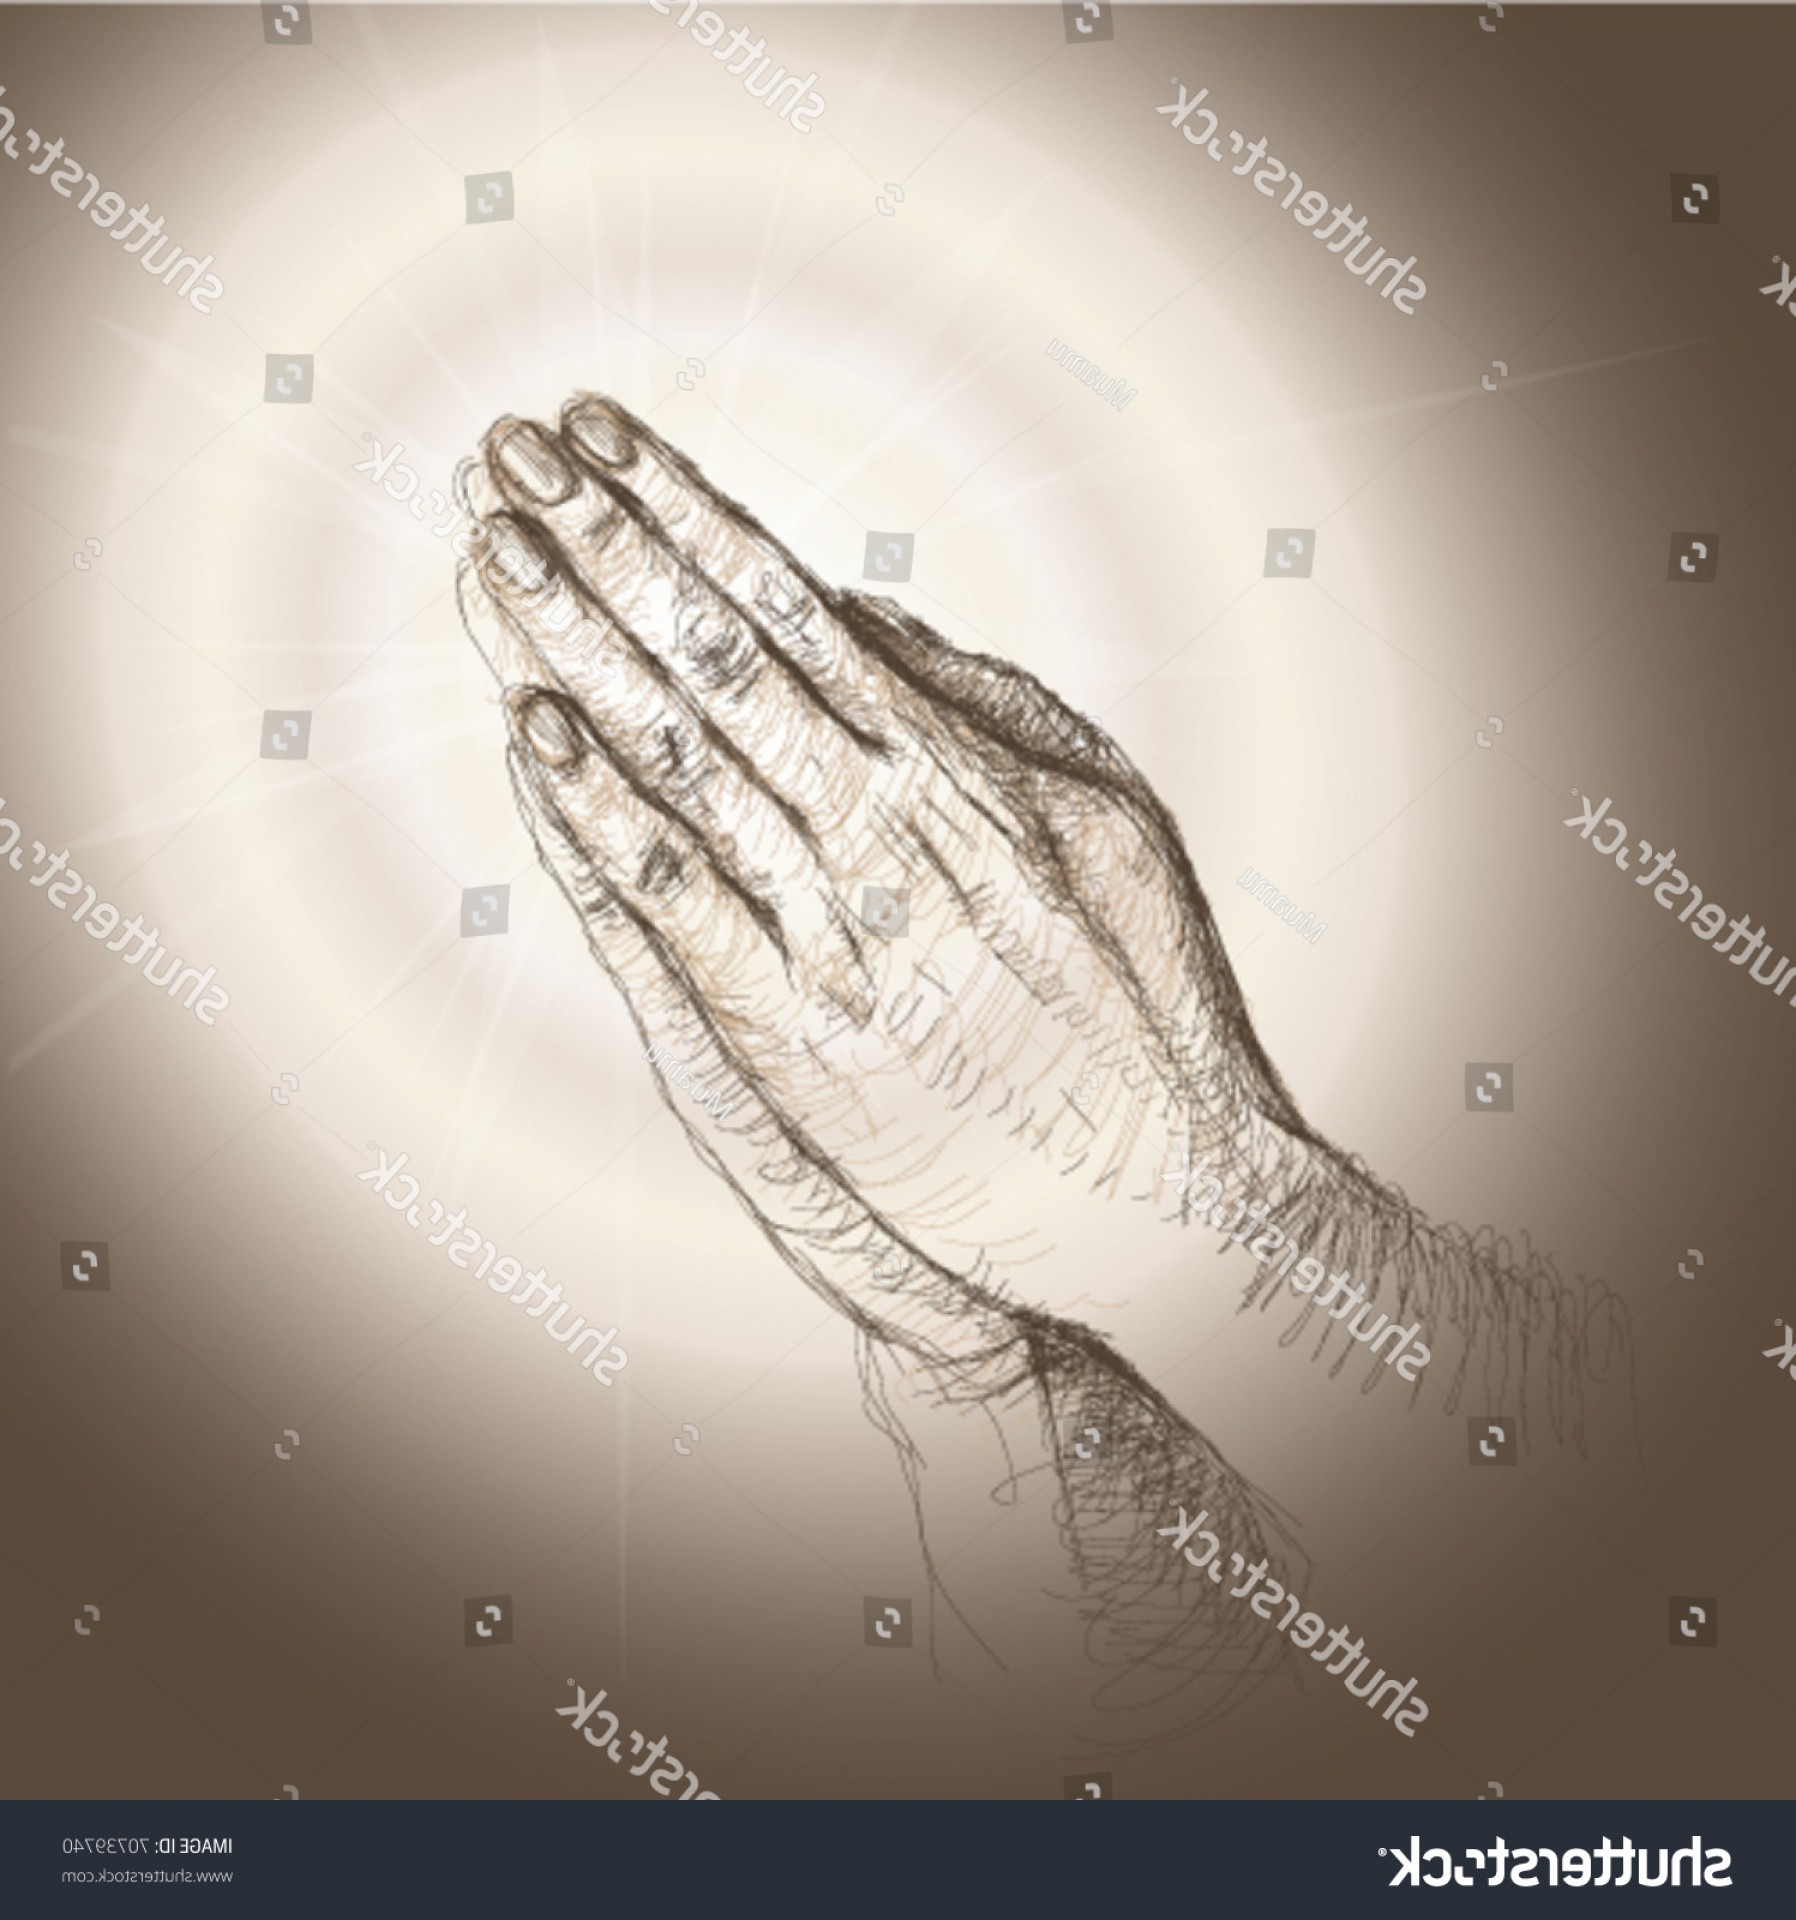 Praying Hands Vectors Shutterstock: Praying Hands Realistic Sketch Not Autotraced